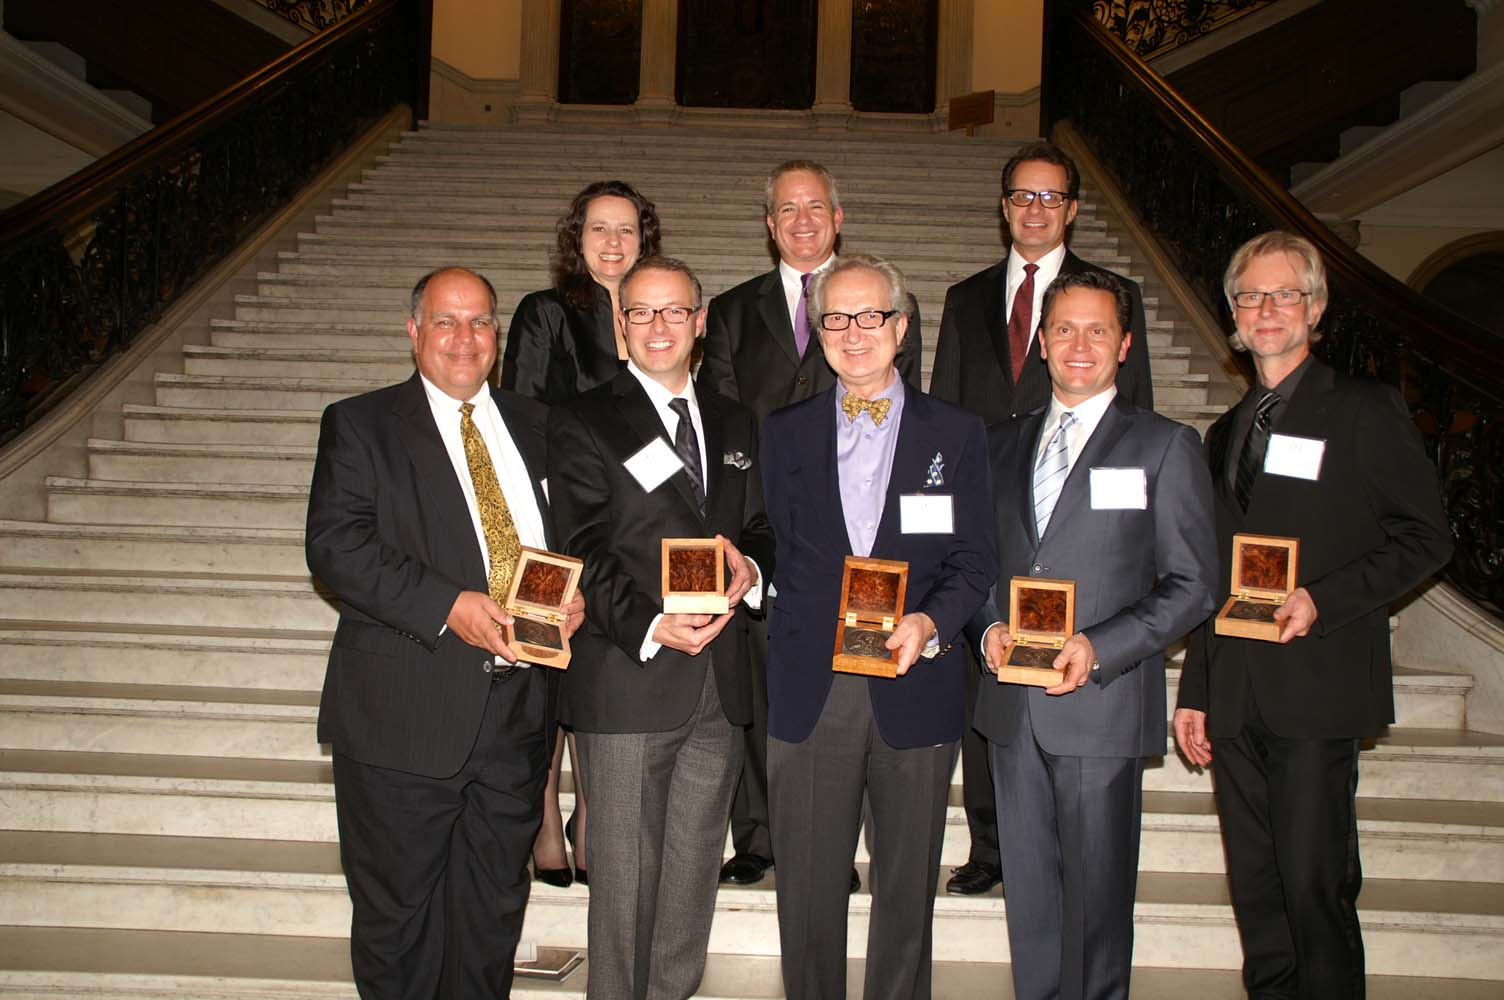 Bulfinch Award winners, front row, l. to r.: Bob Gryzwacz, Michael Carter, Jan Gleysteen, Greg Lombardi, Jeff Heyne